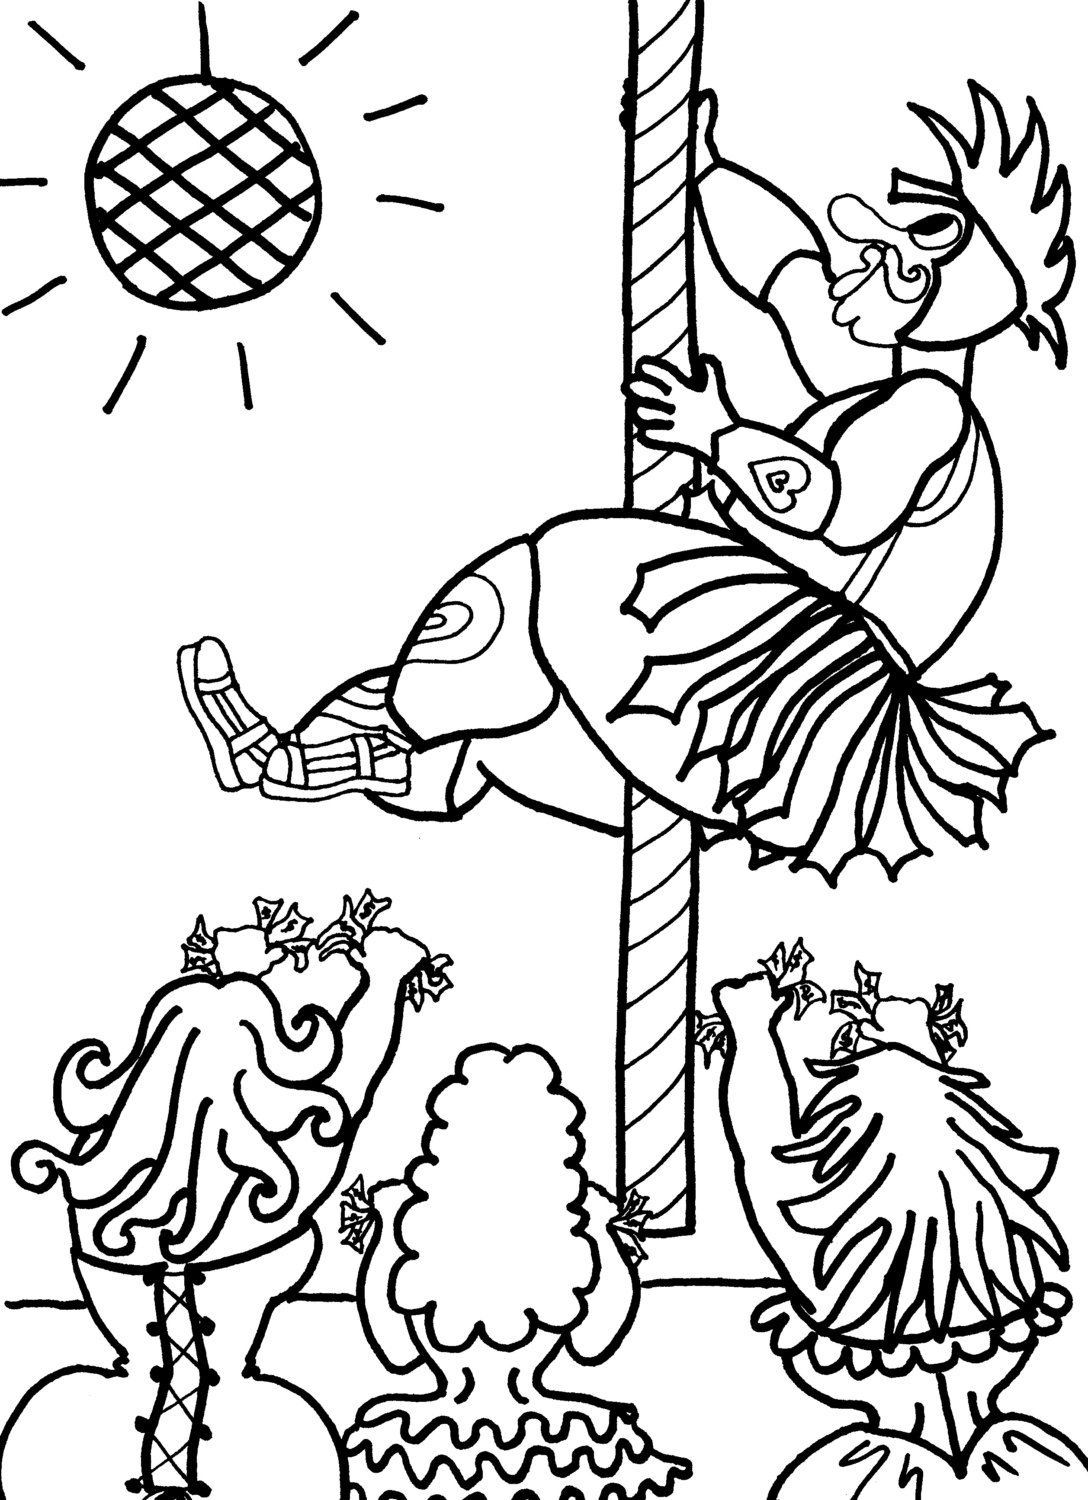 Gladiator Stripper Boy - Sexy Coloring Pages for Adults from the ...